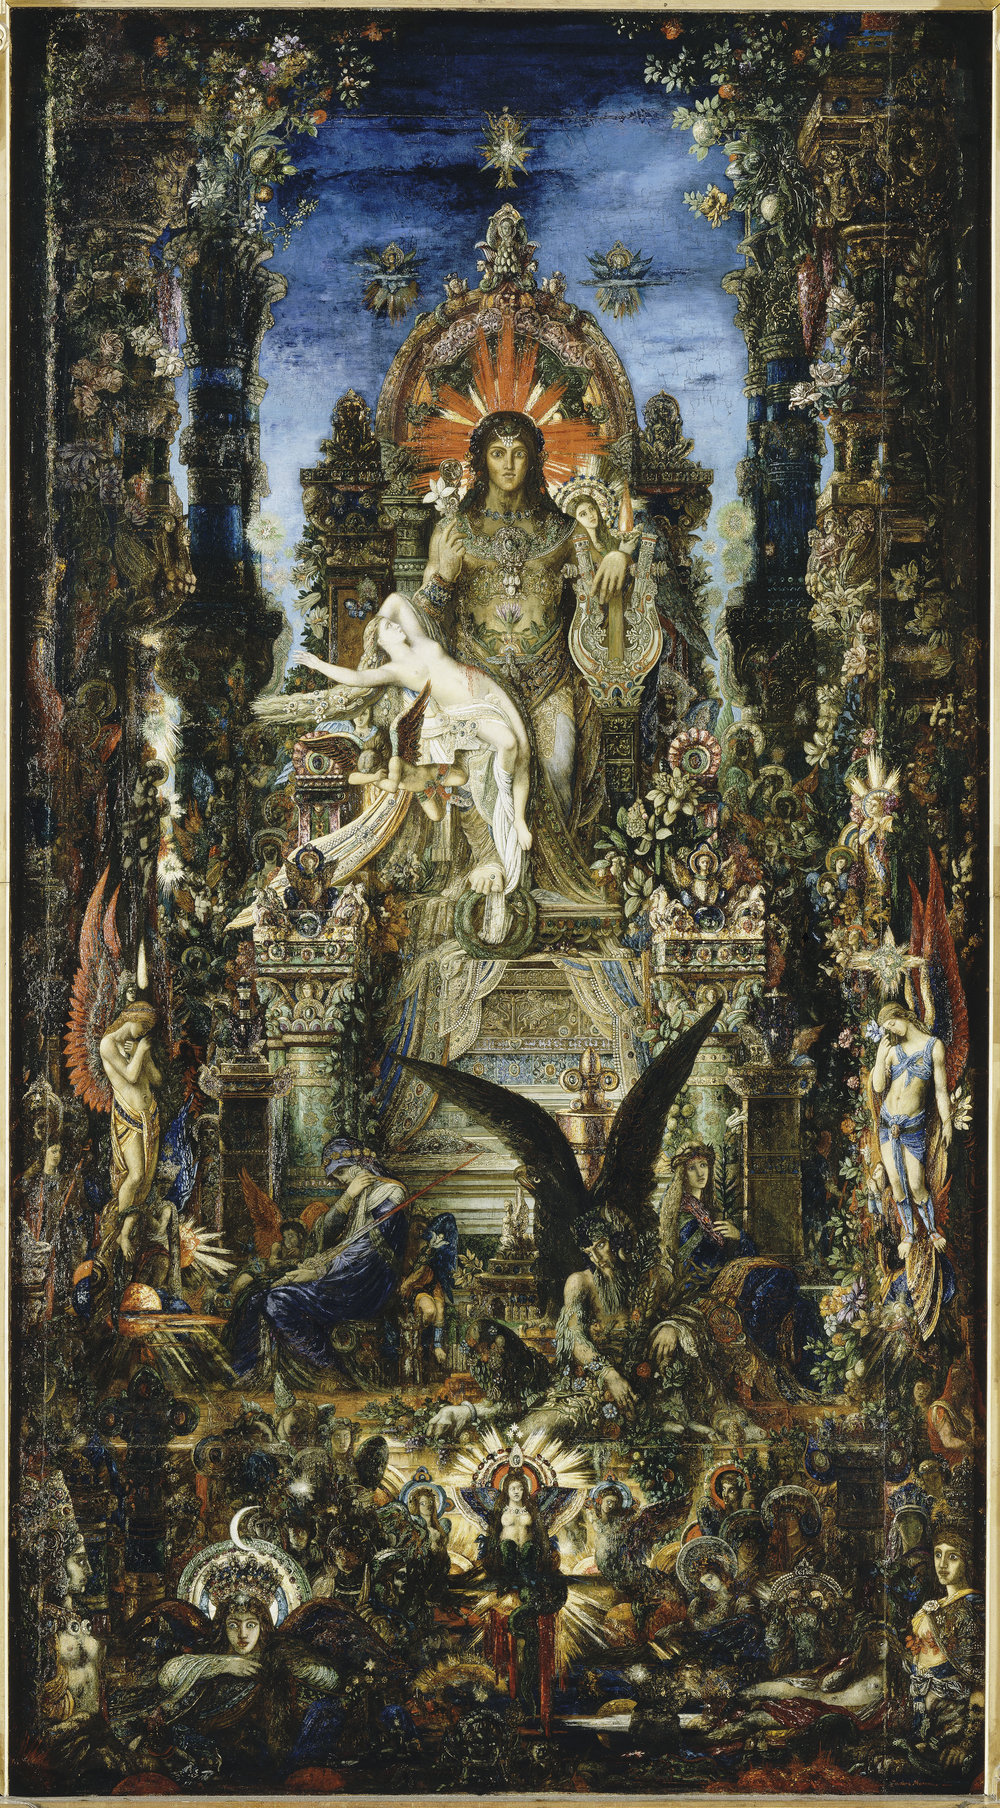 Jupiter and Semele  (1894-1895) by Gustave Moreau. Musée Gustave Moreau (Paris, France).